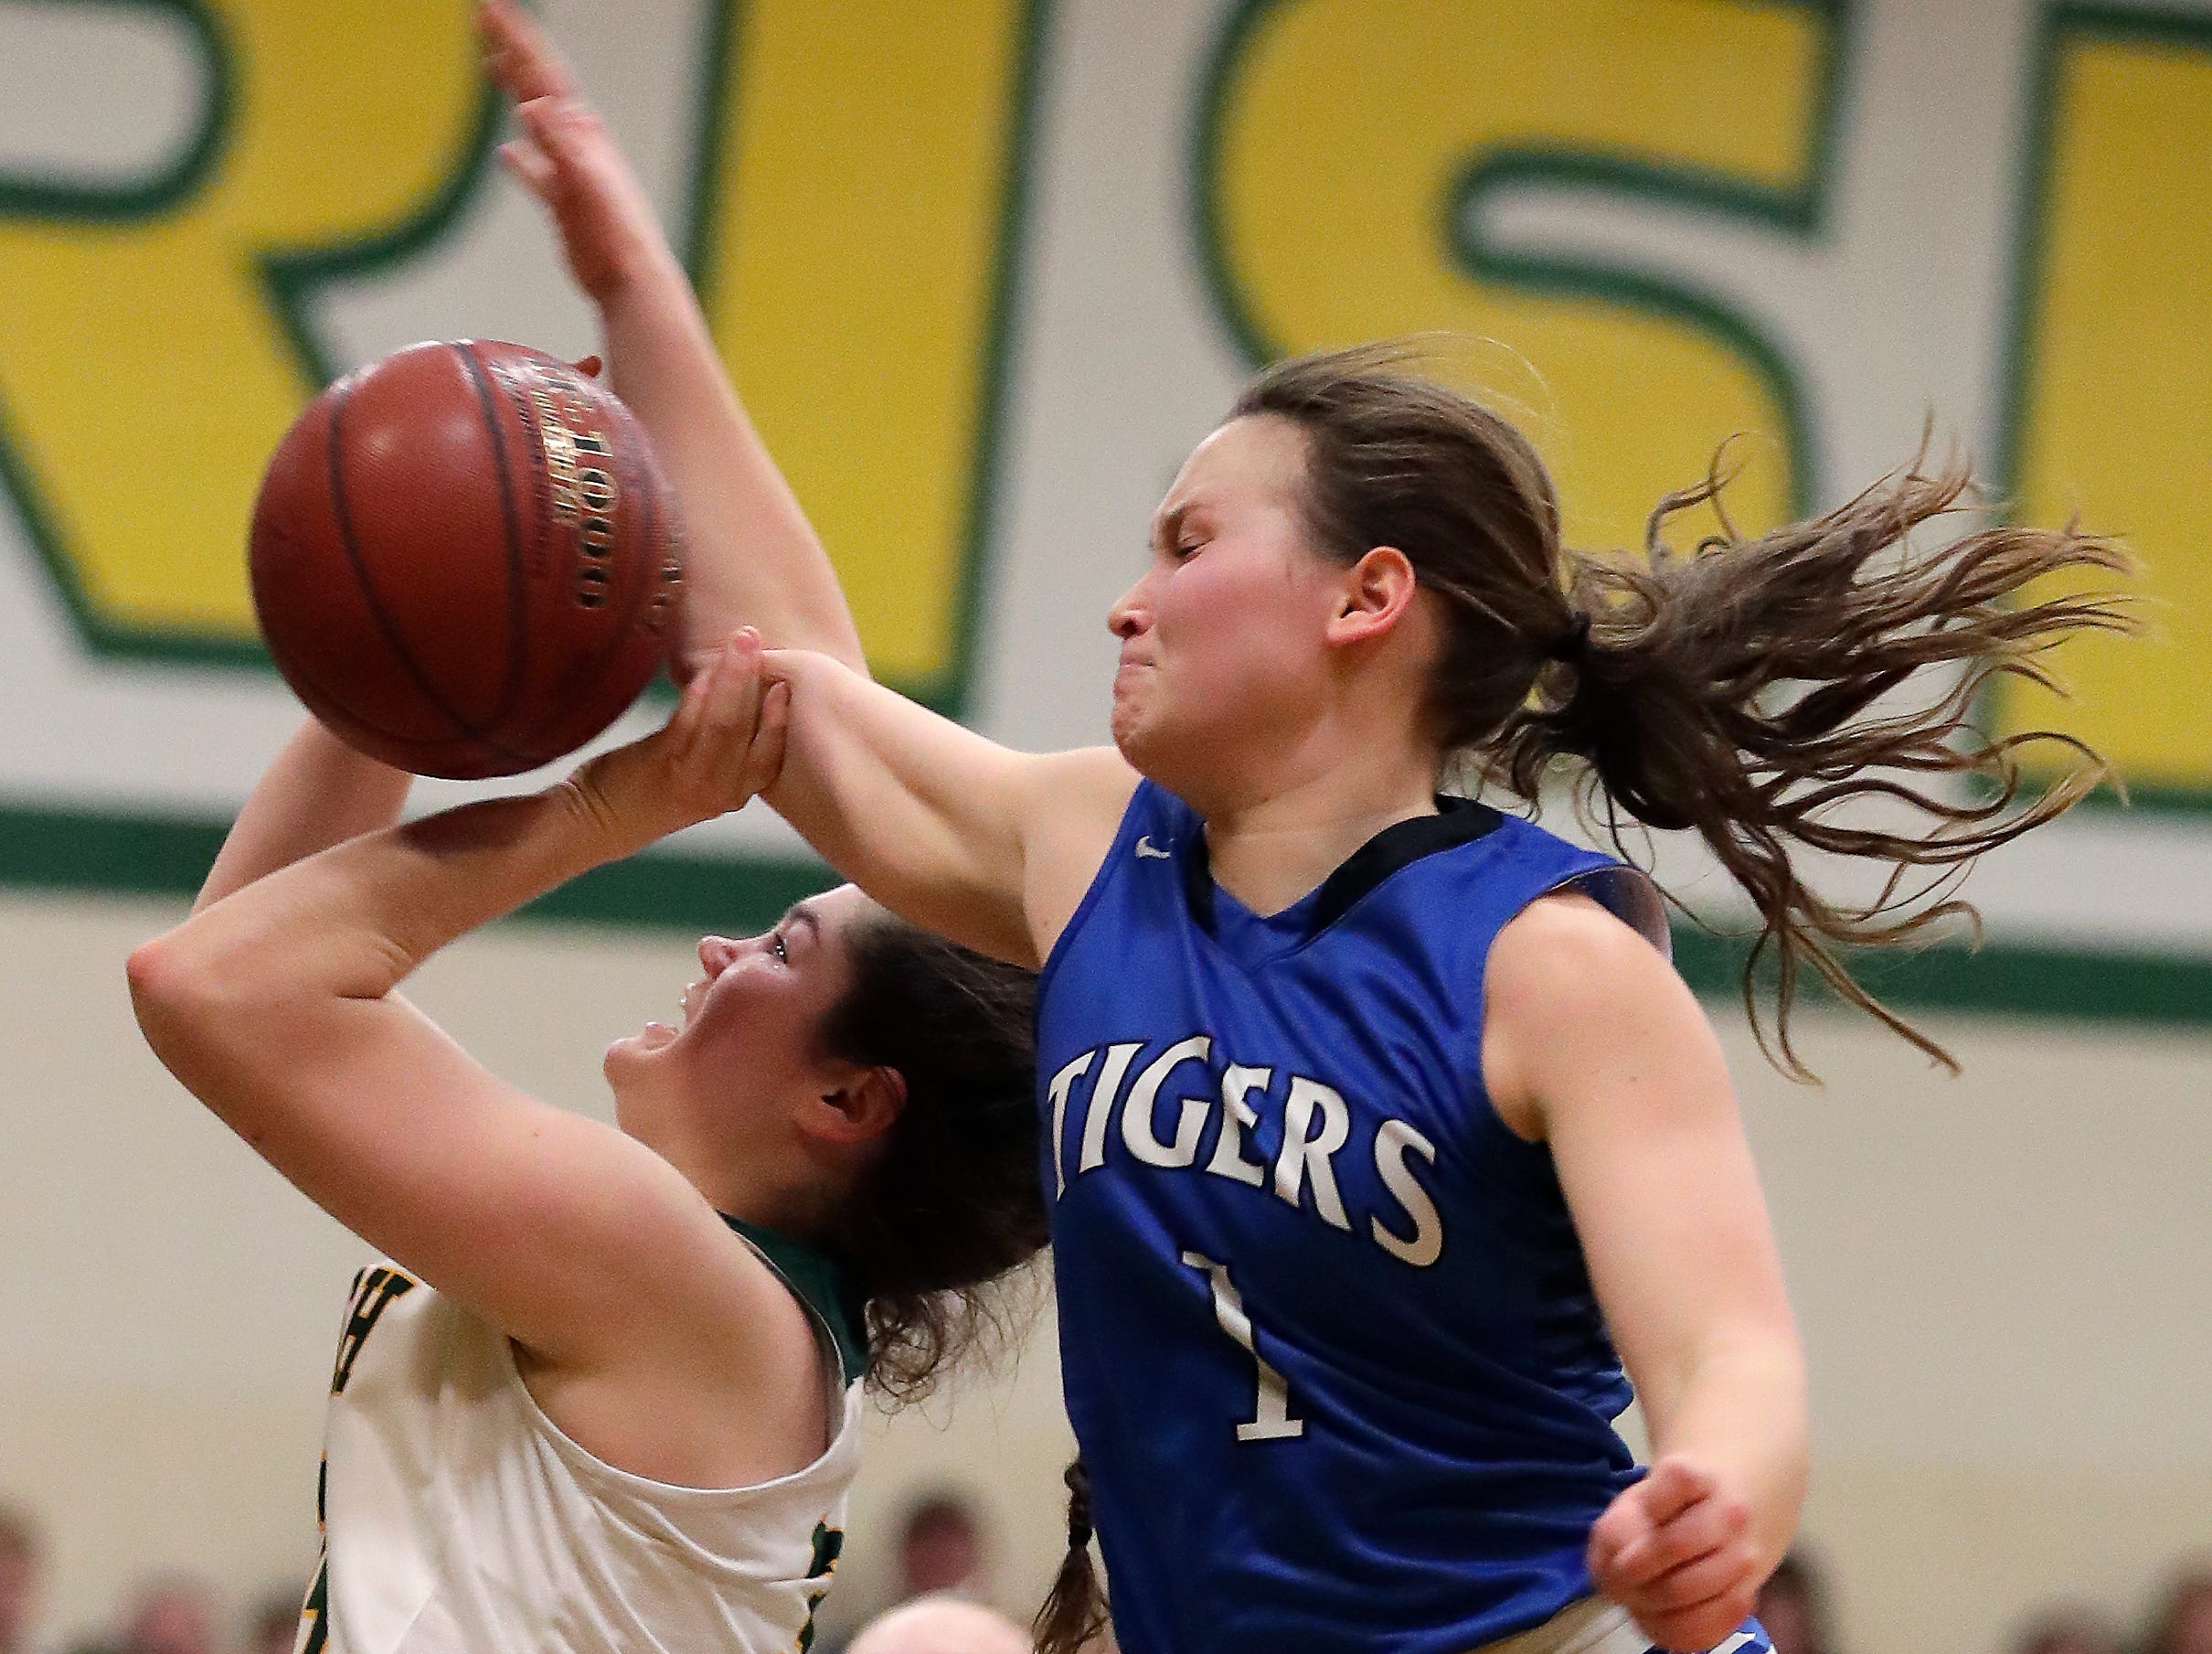 Wrightstown High School's #1 Bridget Froehlke against Freedom High School's #34 Linnea Willer during their North Eastern Conference girls basketball game on Thursday, January 3, 2019, in Freedom, Wis. Freedom defeated Wrightstown 54 to 34.Wm. Glasheen/USA TODAY NETWORK-Wisconsin.